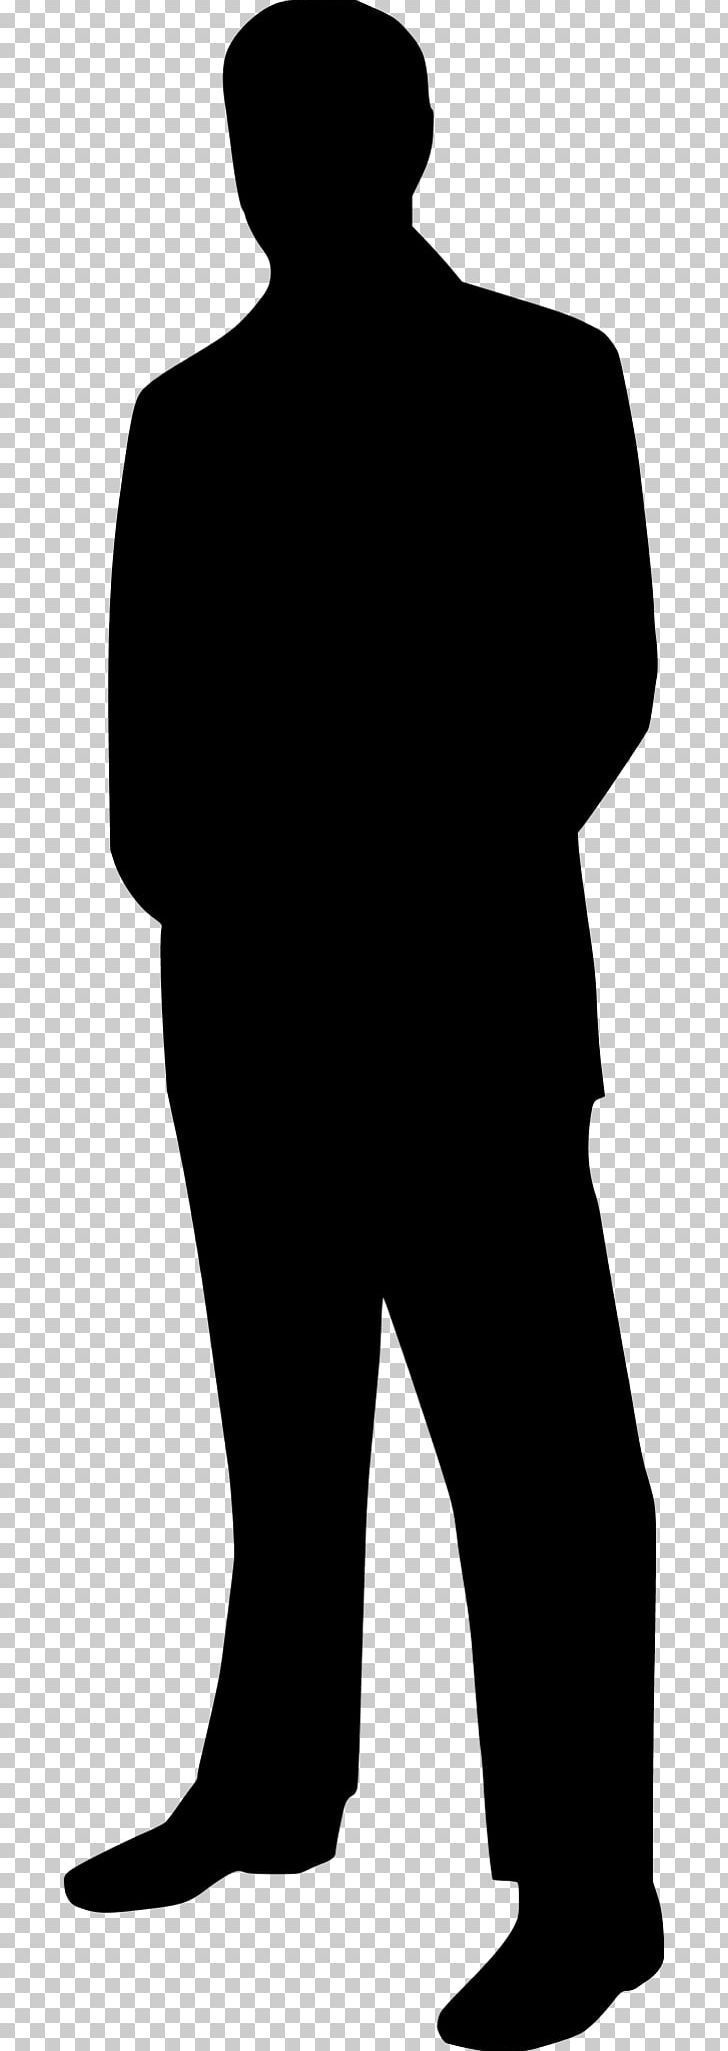 Silhouette Man Png Animals Black Black And White Businessperson Clip Art Silhouette Man Silhouette Business Person